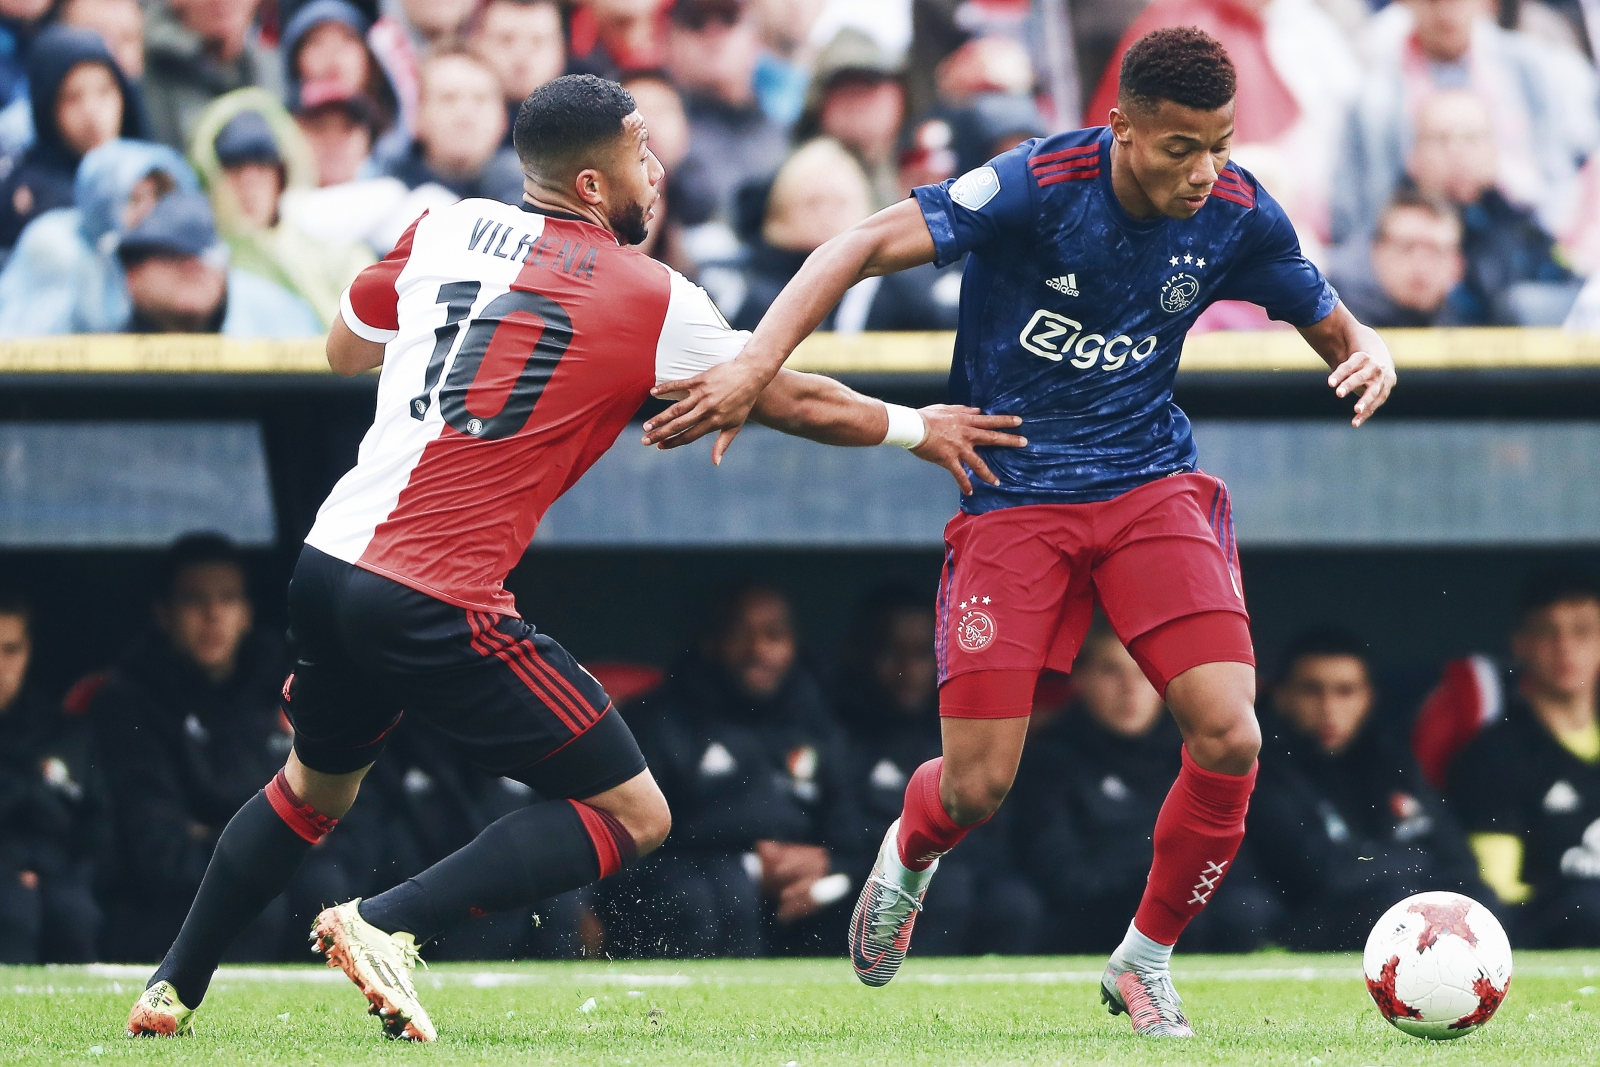 Ajax 4-1 Lyon match report, goals: Europa League semi ...